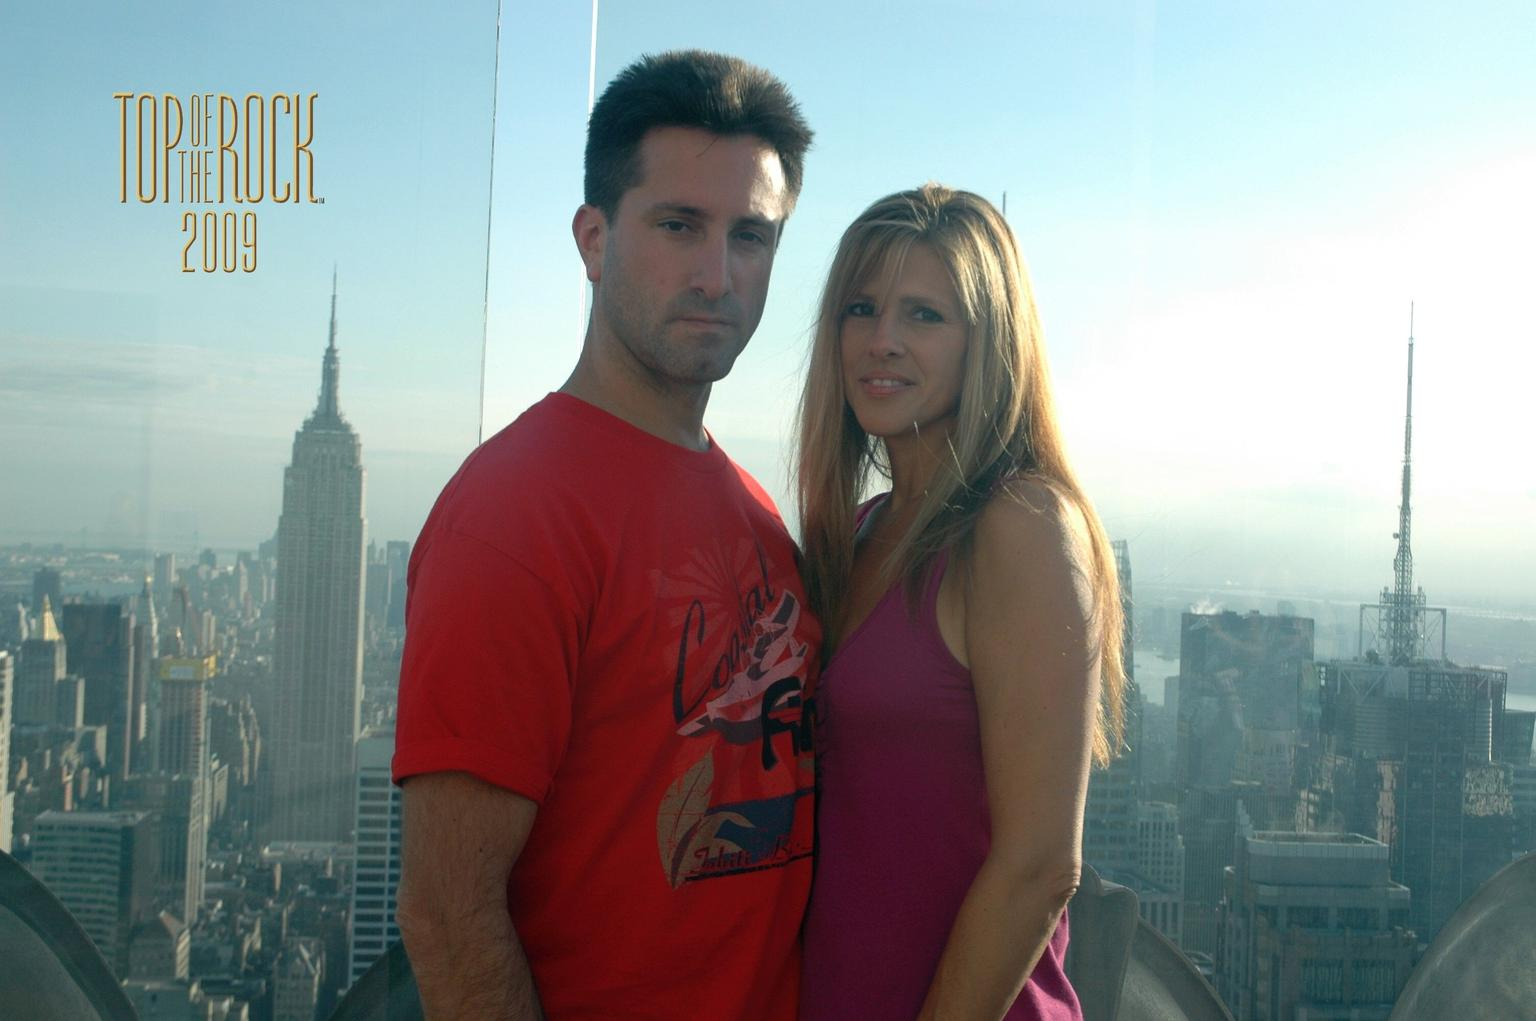 Top of the Rock Observation Deck